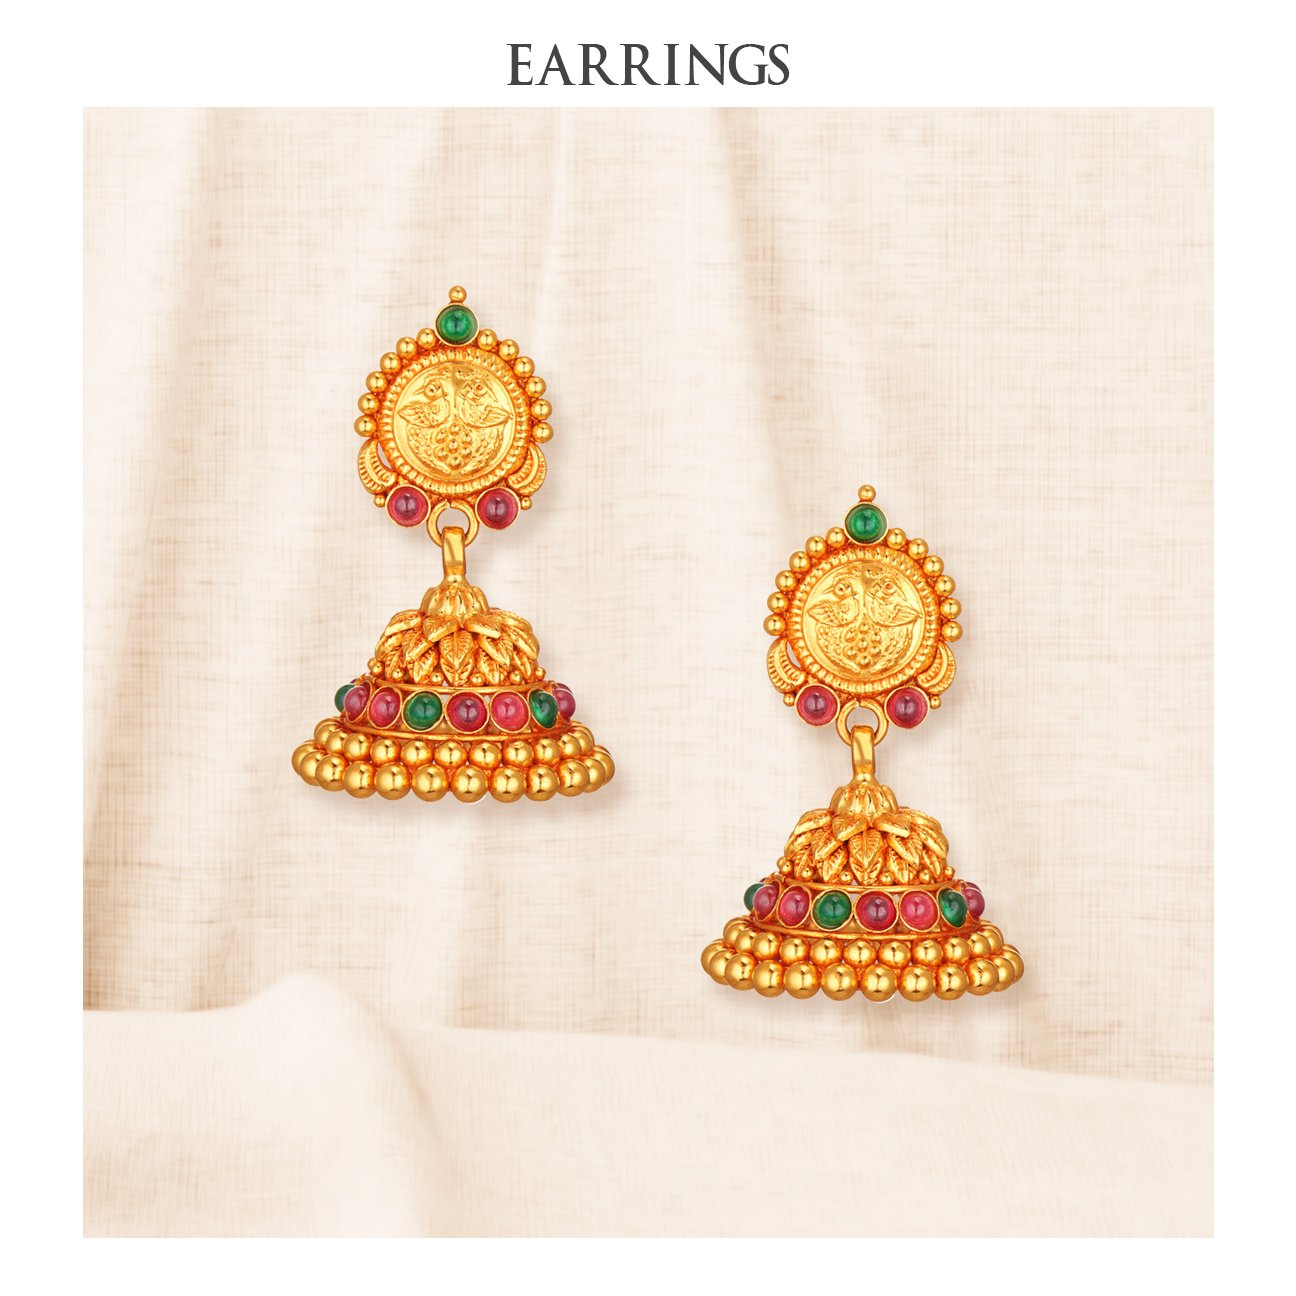 Online Jewellery Shopping Store | Buy 22Kt Gold Jewellery with